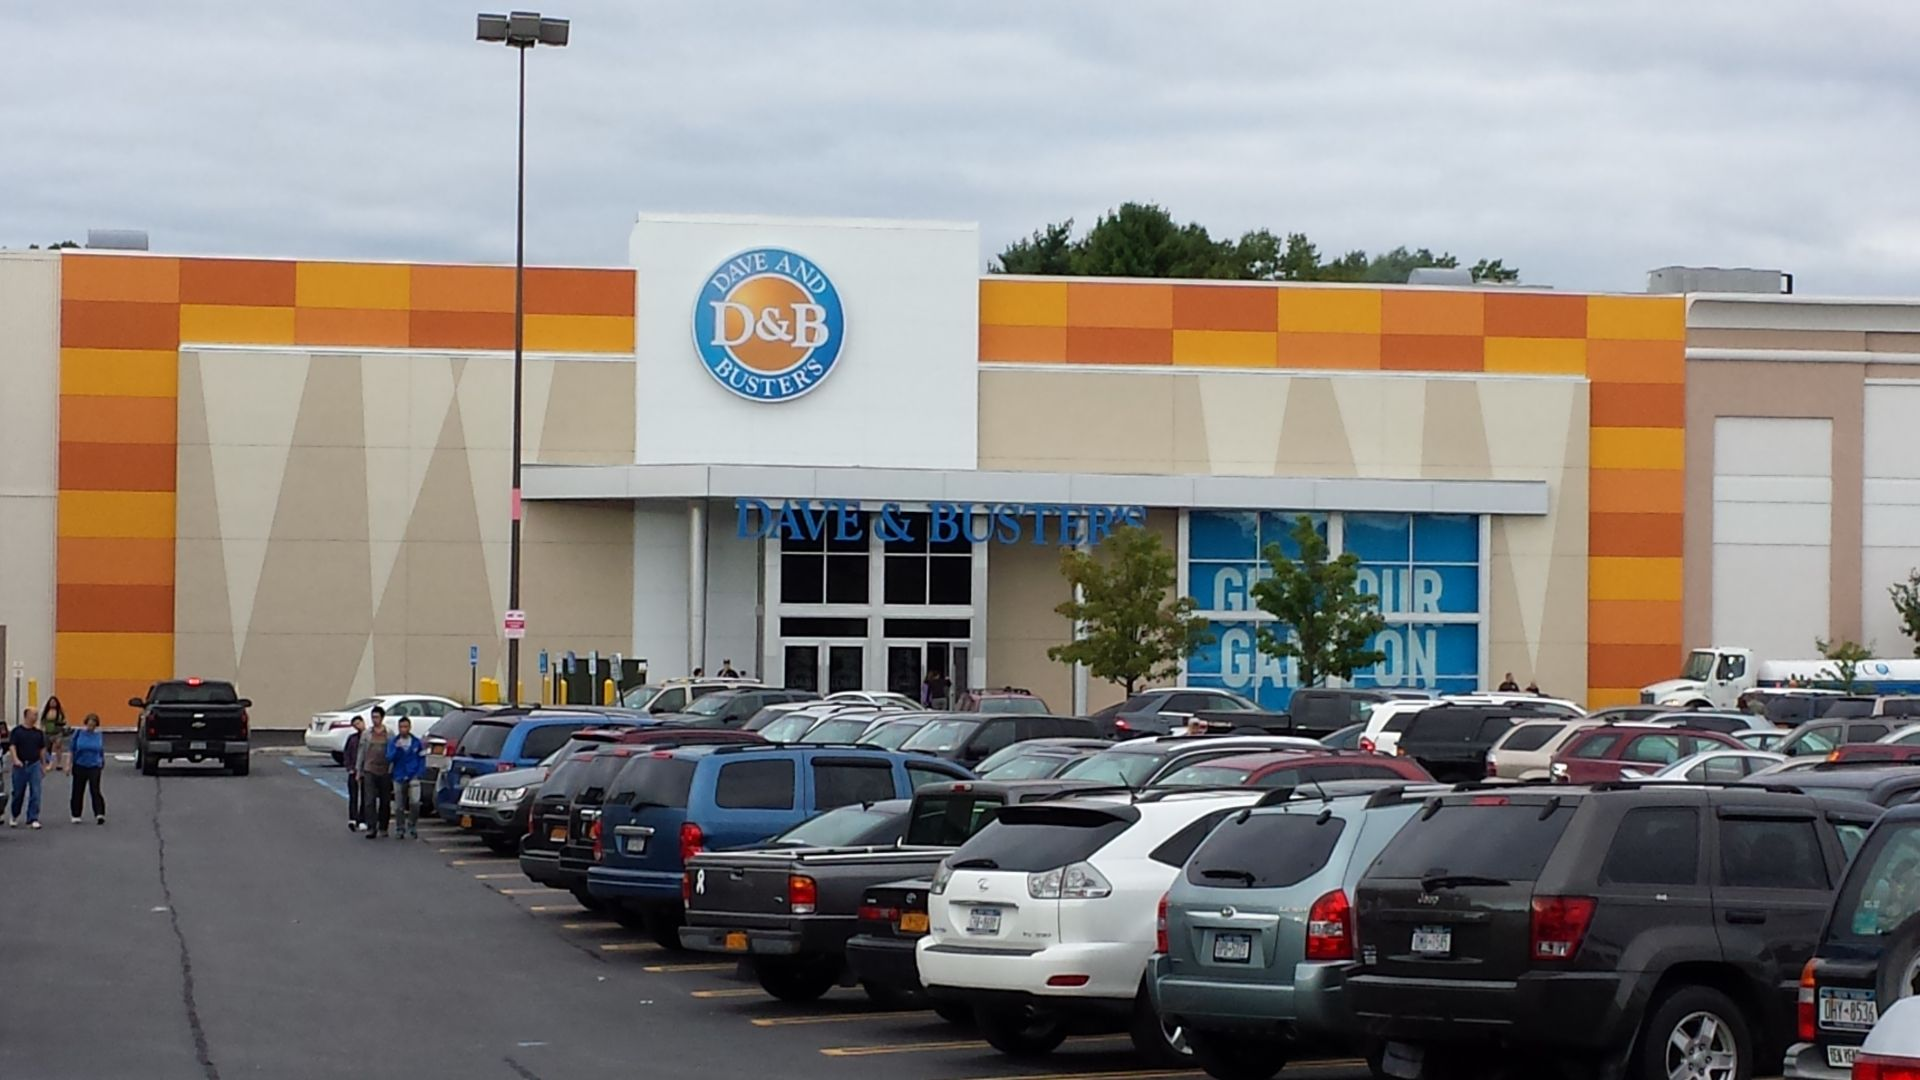 Dave and Buster´s store or outlet store located in Albany, New York - Crossgates Mall location, address: 1 Crossgates Mall Road, Albany, New York - NY Find information about hours, locations, online information and users ratings and reviews. Save money on Dave and Buster´s and find store or outlet near me.3/5(1).